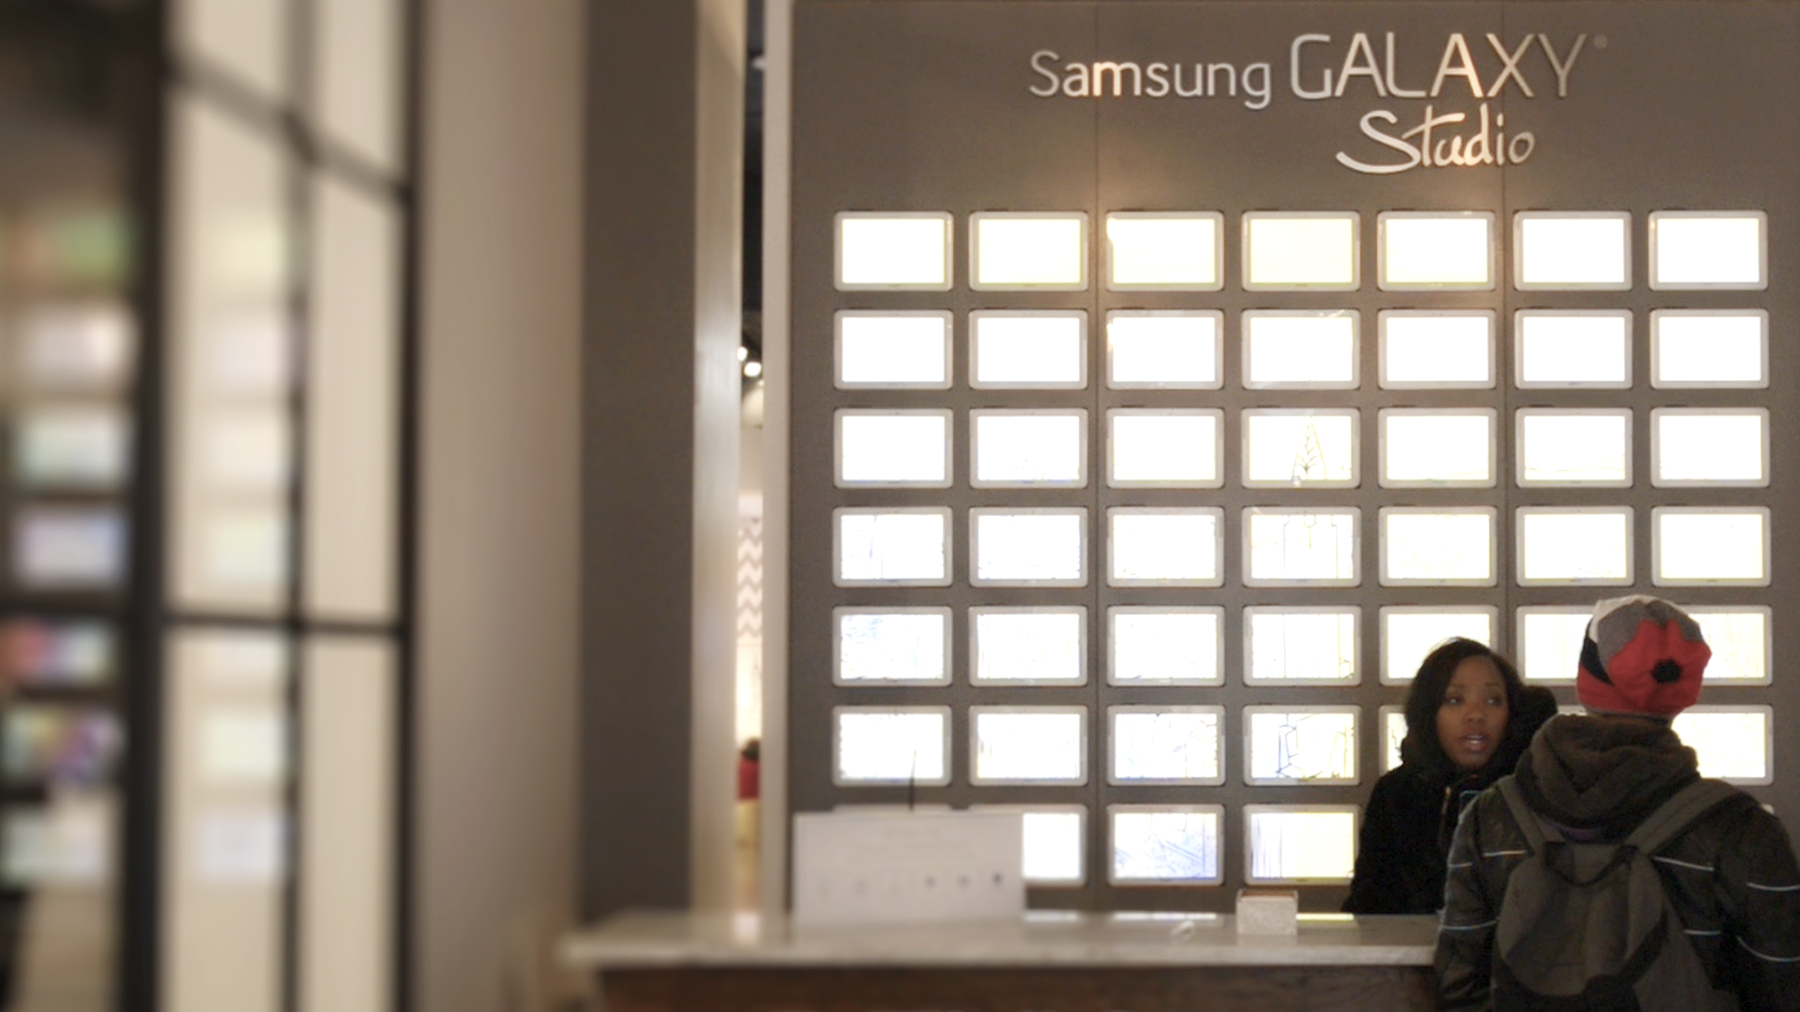 Samsung_PopUp_Images_08